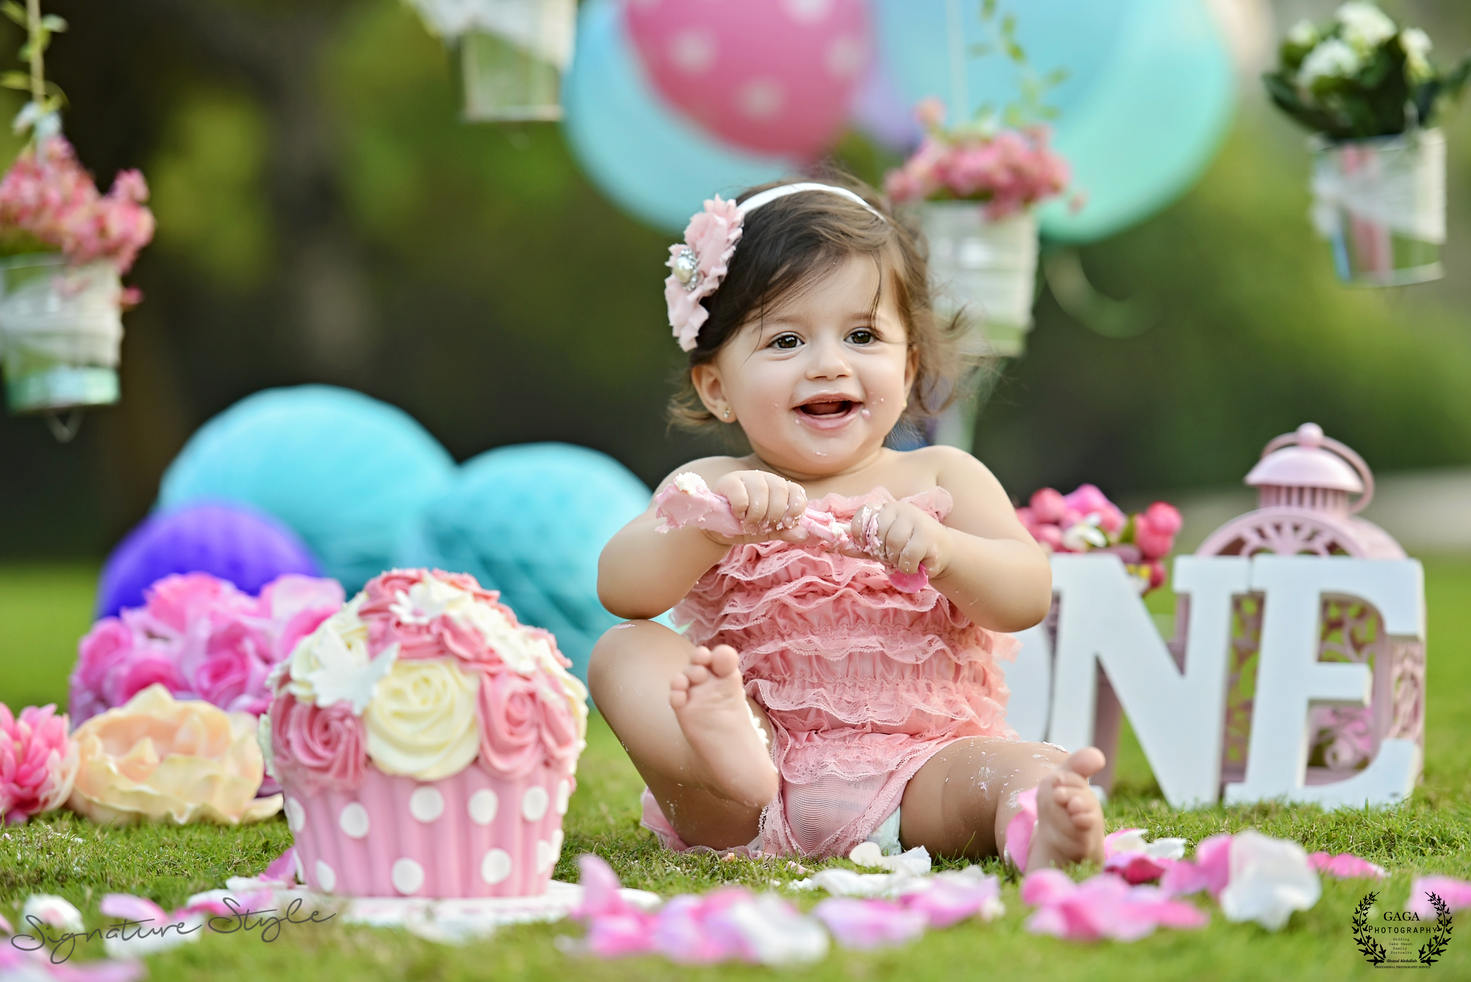 Life's super exciting for a one-year-old as they start saying their first words and taking those first steps. Cute Princess Stephanie Cake smash.